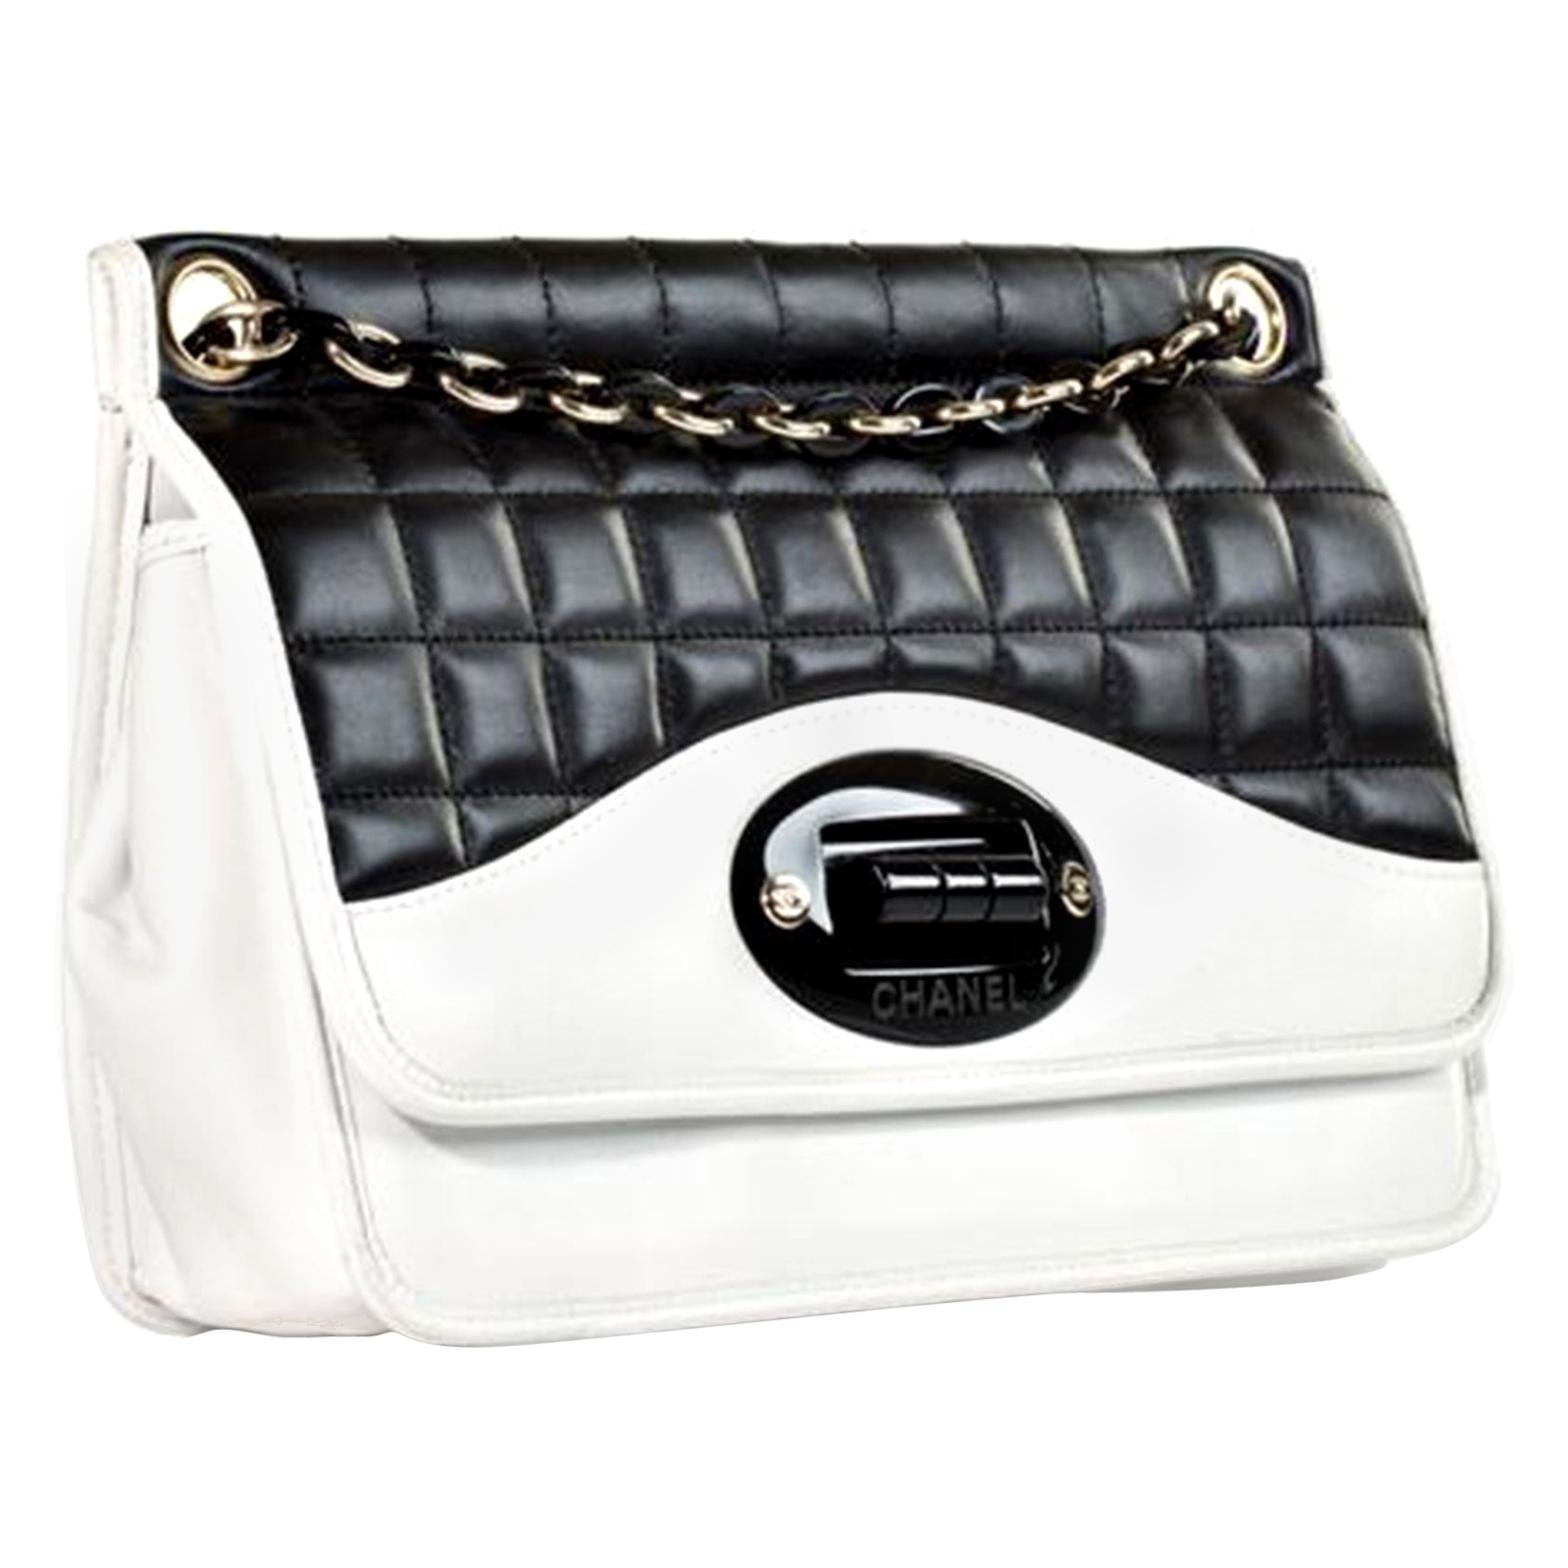 Chanel Classic Flap Two Tone Limited Edition Black & White Lambskin Leather Bag